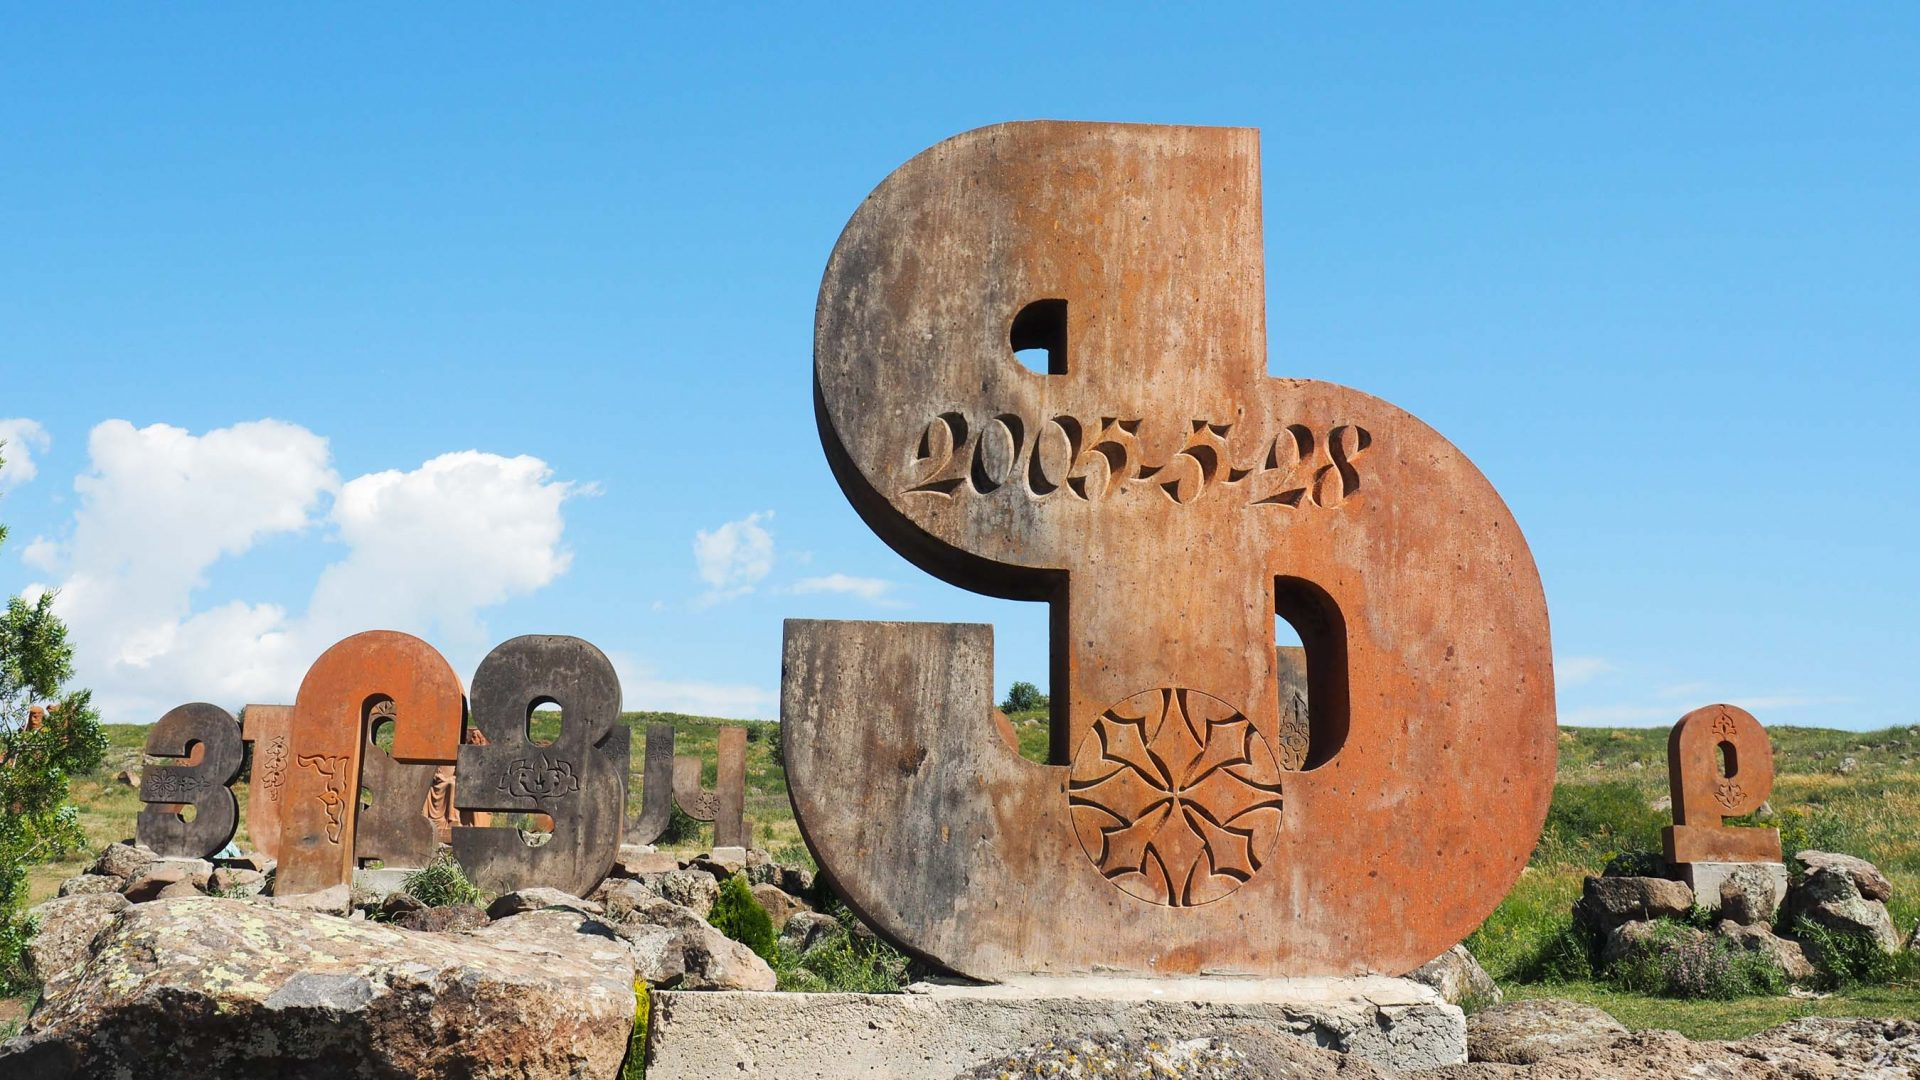 One of the letters of the Armenian alphabet